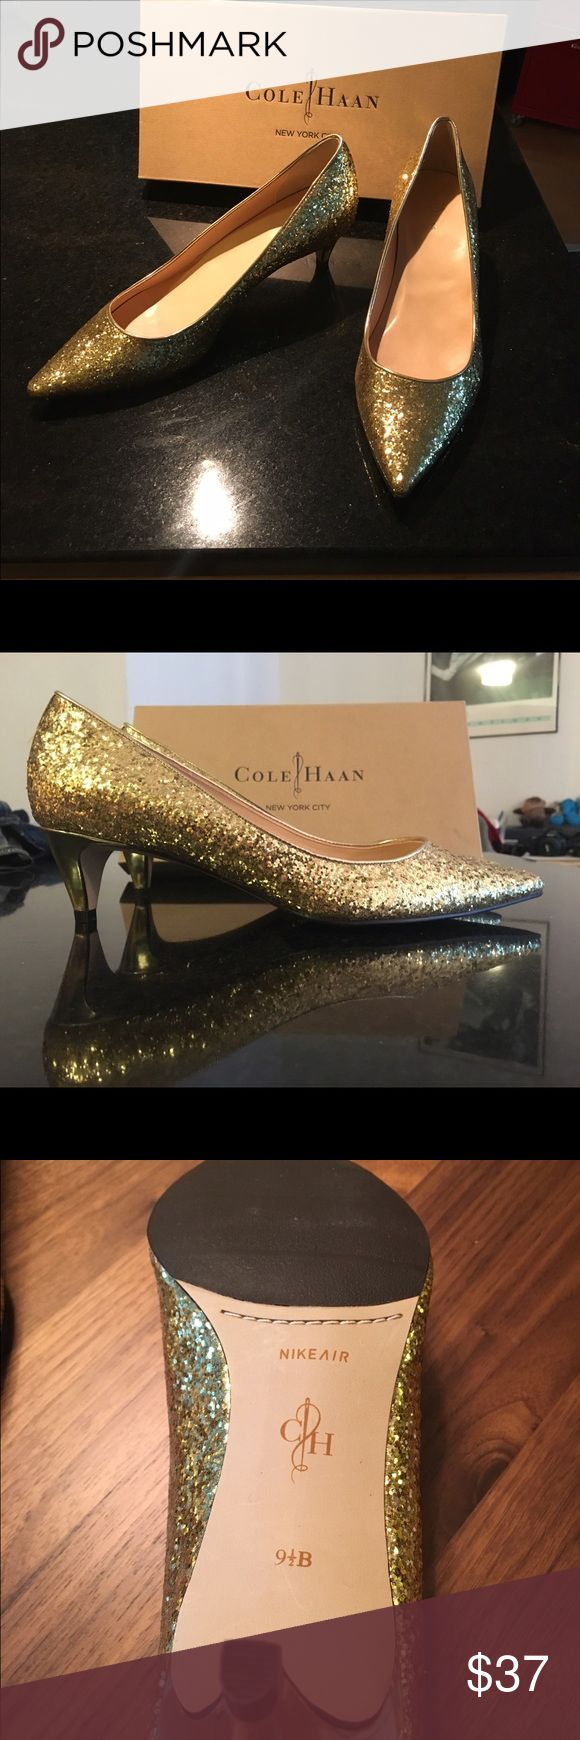 """Cole Haan Air Juliana Glitter Pumps-Gold 9.5 These are fun gold glittery pumps still new in the box.  The soles are very cushioned as they are Cole Haan """"Airs"""" and have a one inch heel Cole Haan Shoes Heels"""